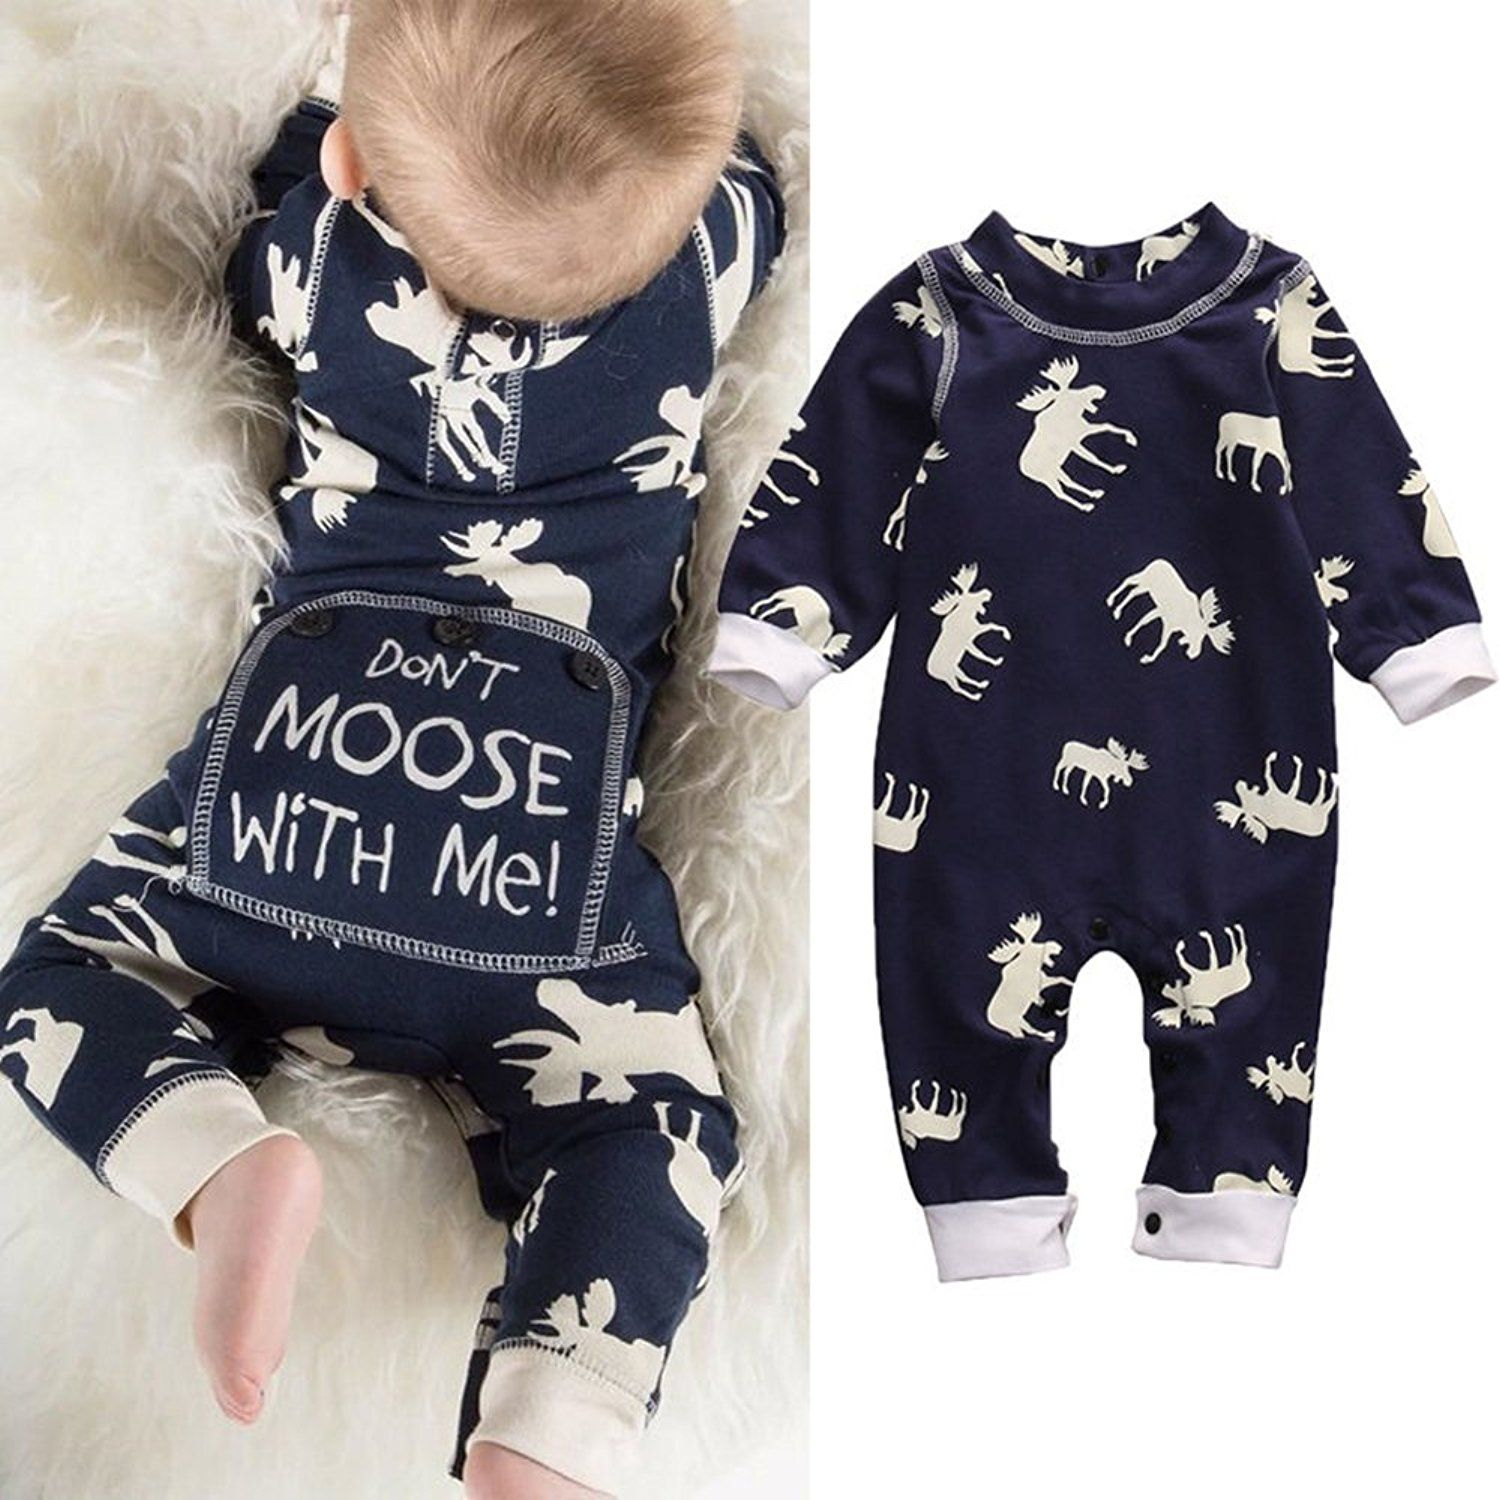 e8ab4701afb2 Amazon.com  Aliven Toddler Infant Baby Girl Boy Long Sleeve Deer Romper  Jumpsuit Pajamas Xmas Outfit  Clothing